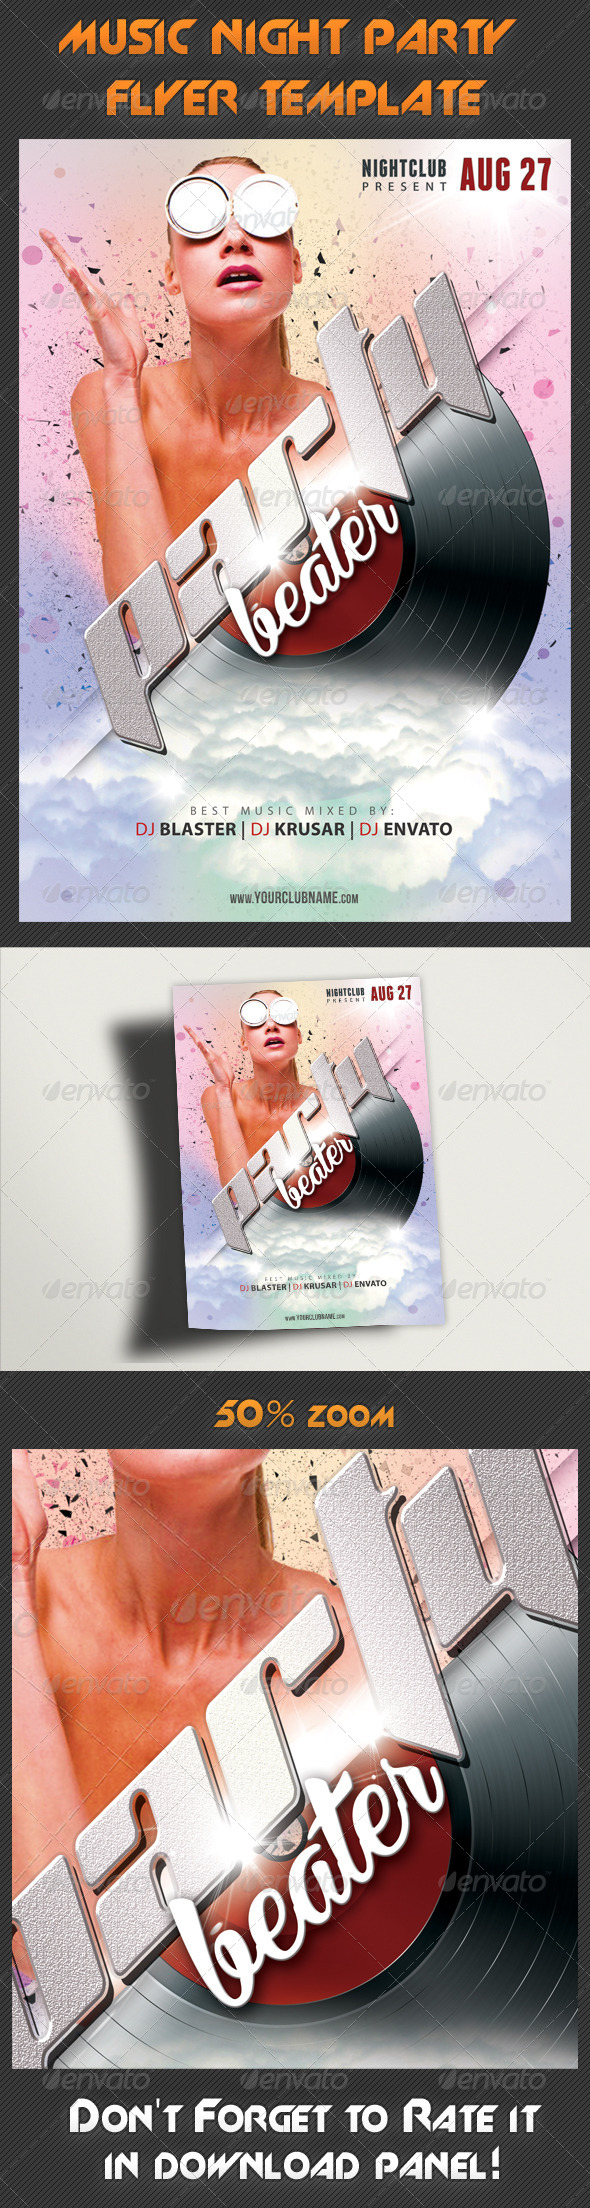 GraphicRiver Music Night Party Flyer Template 19 7899651